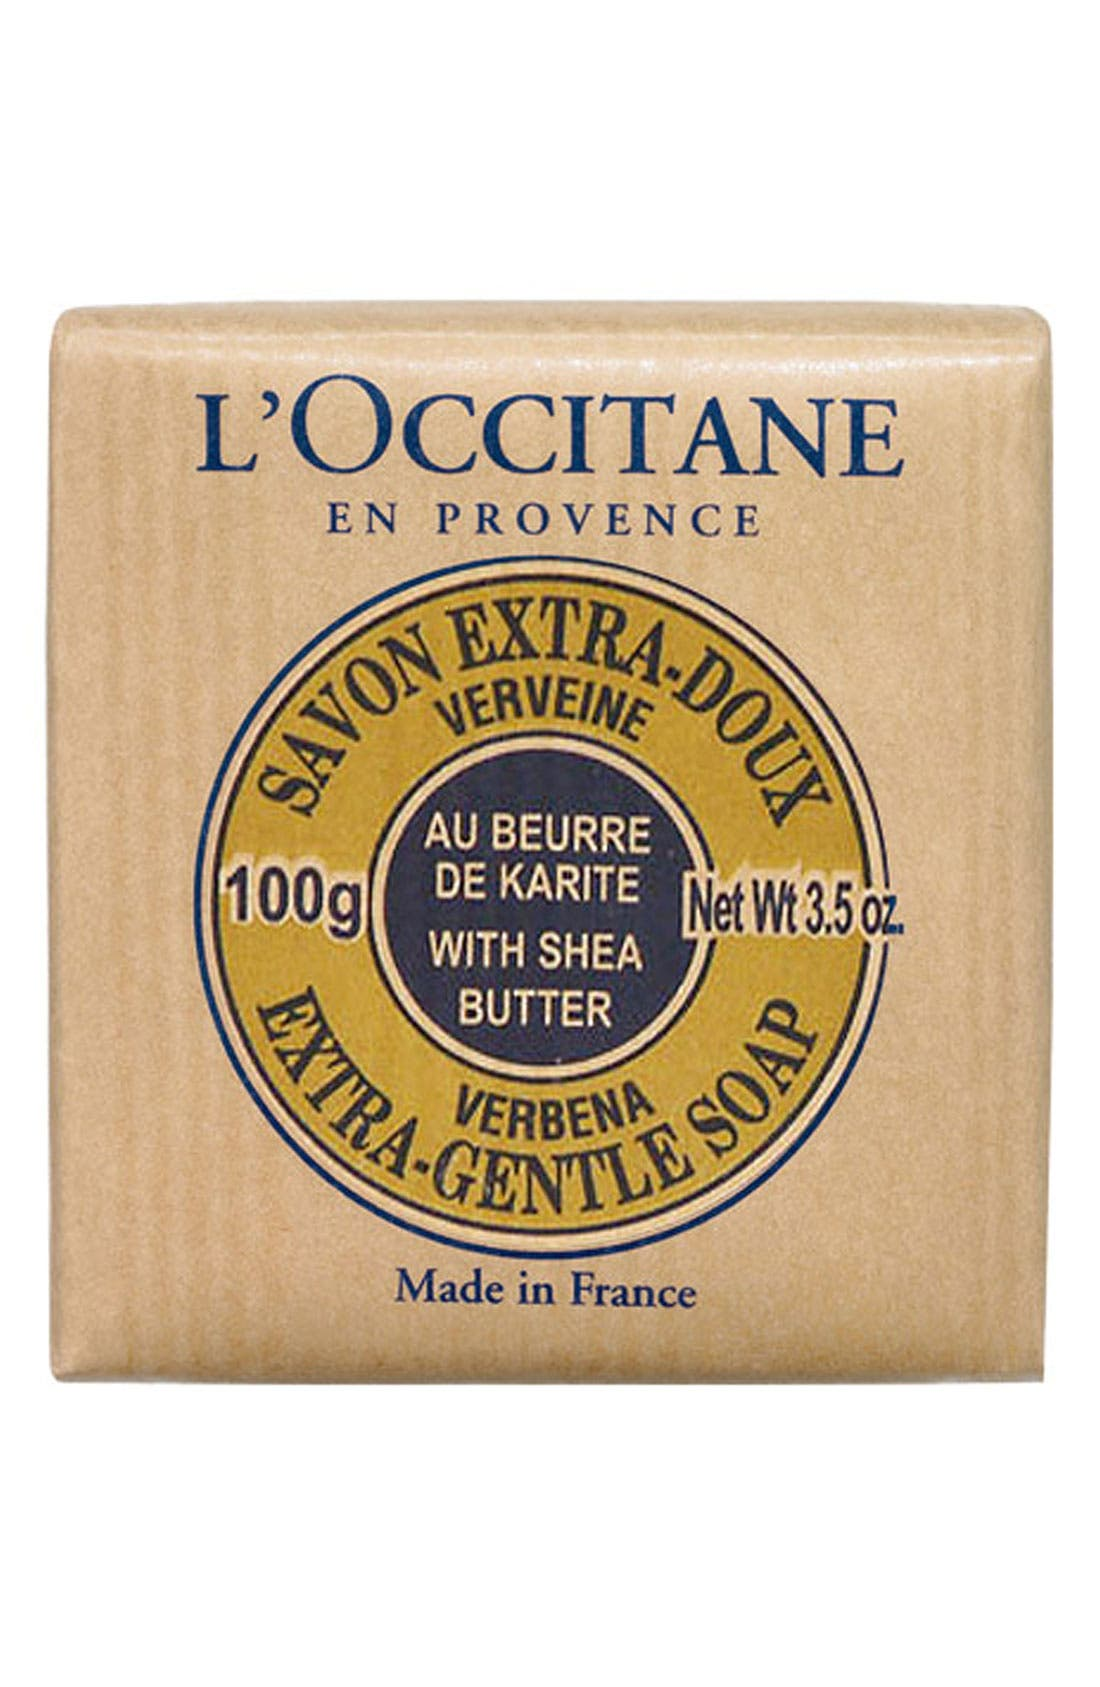 L'Occitane 'Verbena' Shea Soap - Travel Size